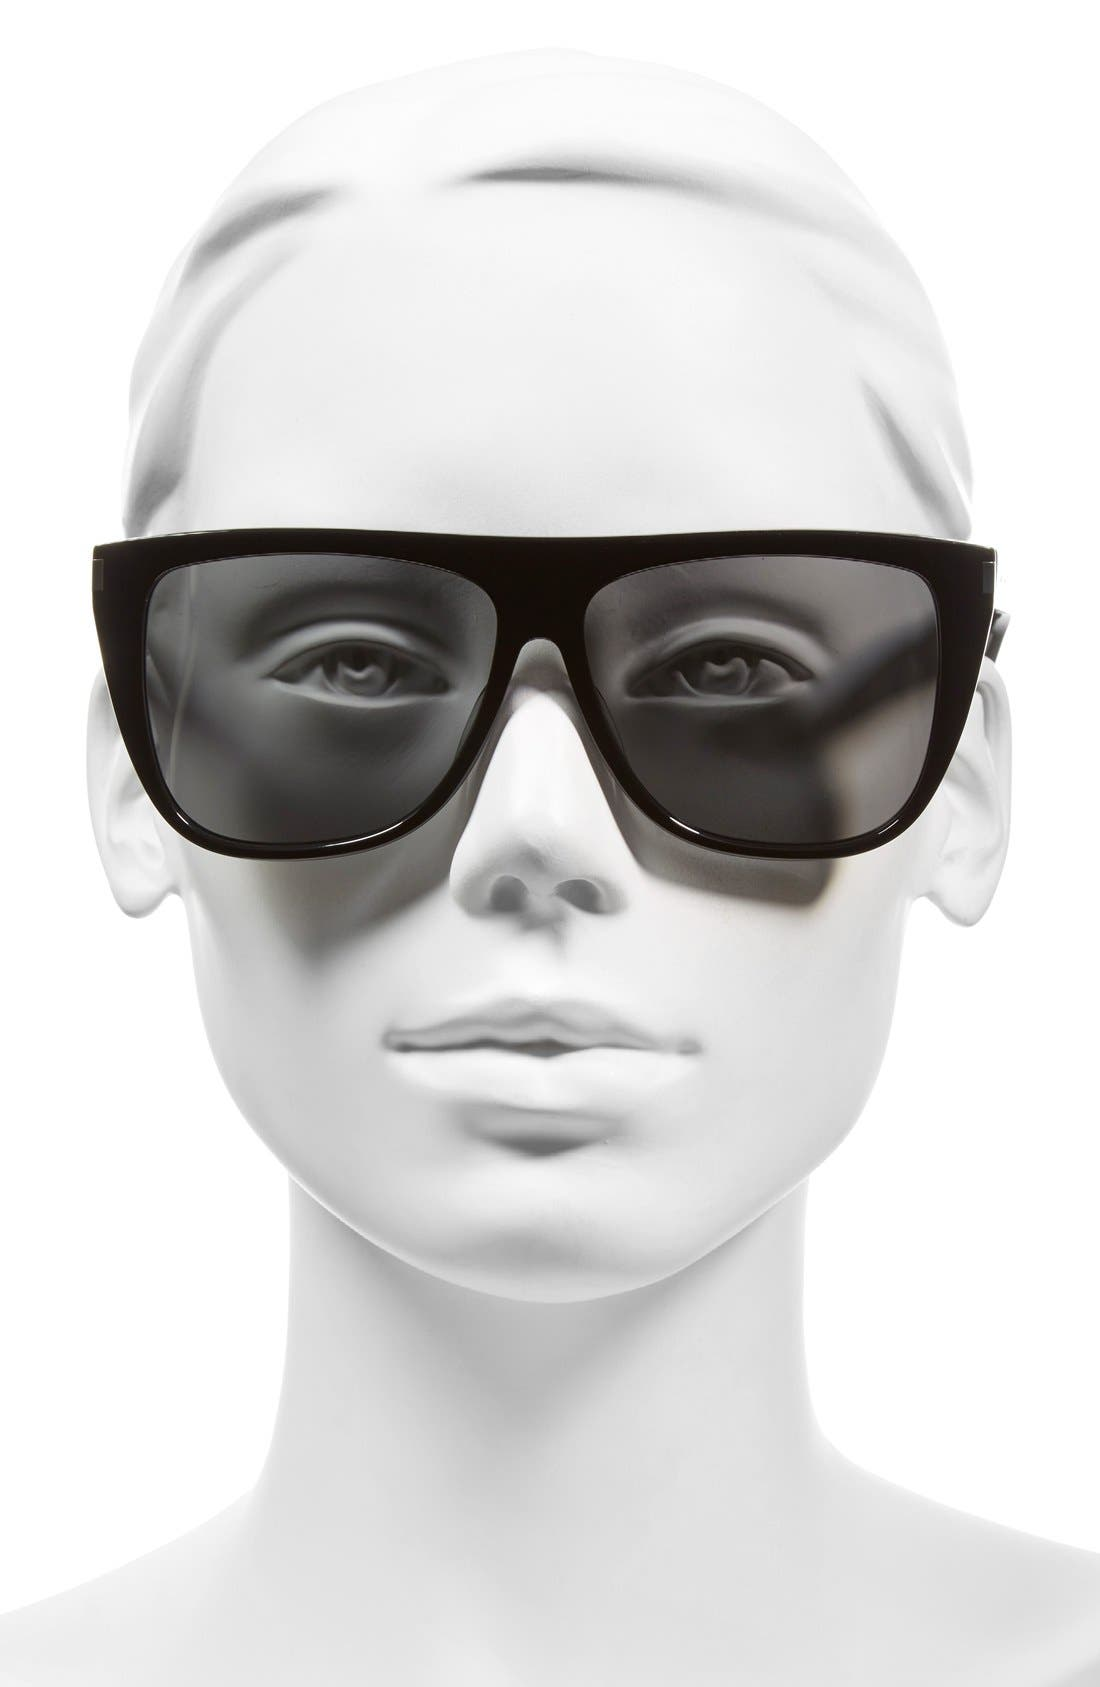 SAINT LAURENT, SL1 59mm Flat Top Sunglasses, Alternate thumbnail 2, color, BLACK/ SILVER